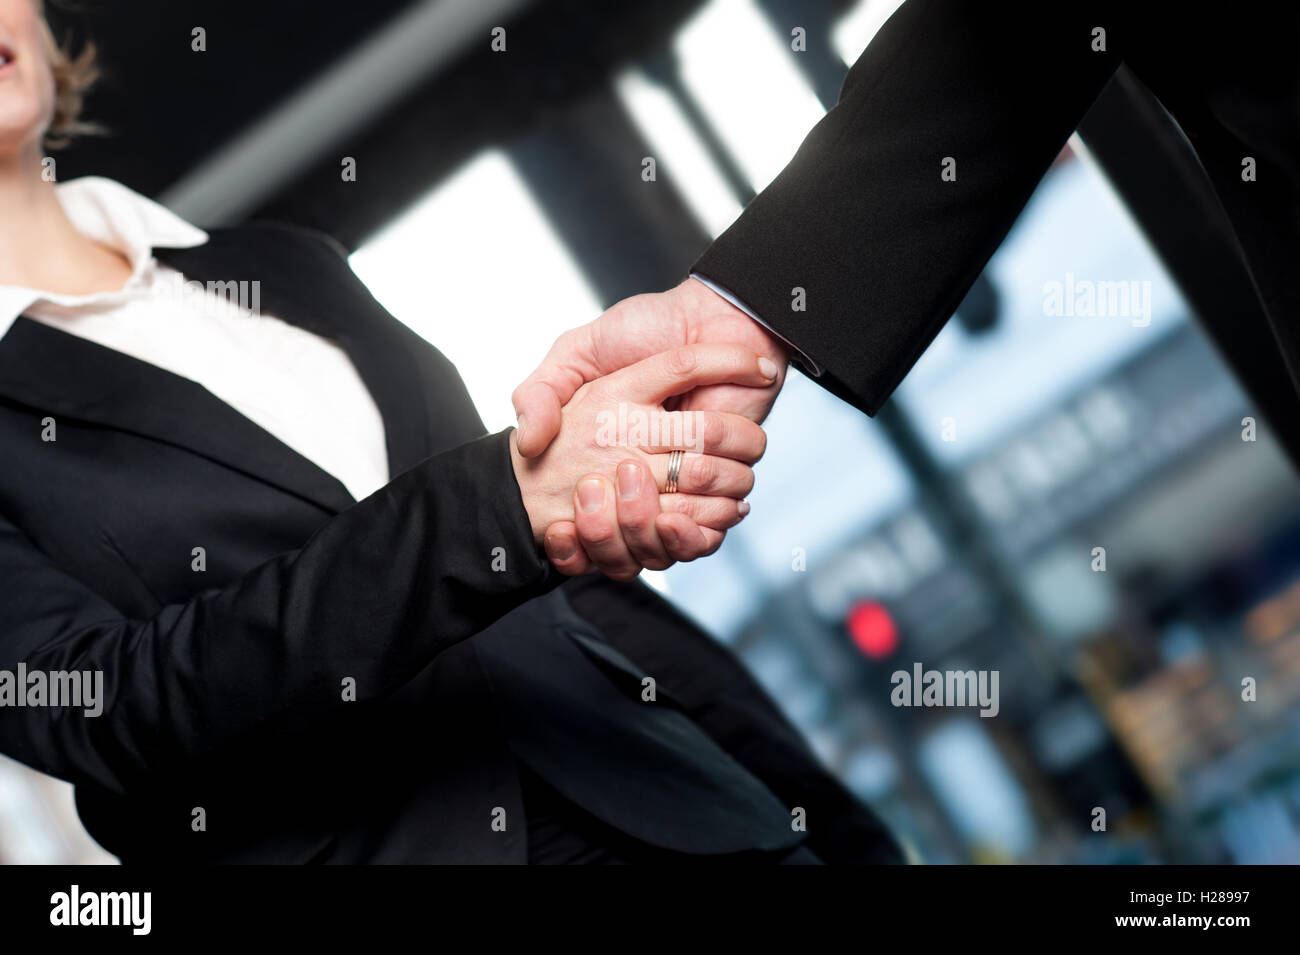 Business handshake, deal finalized - Stock Image